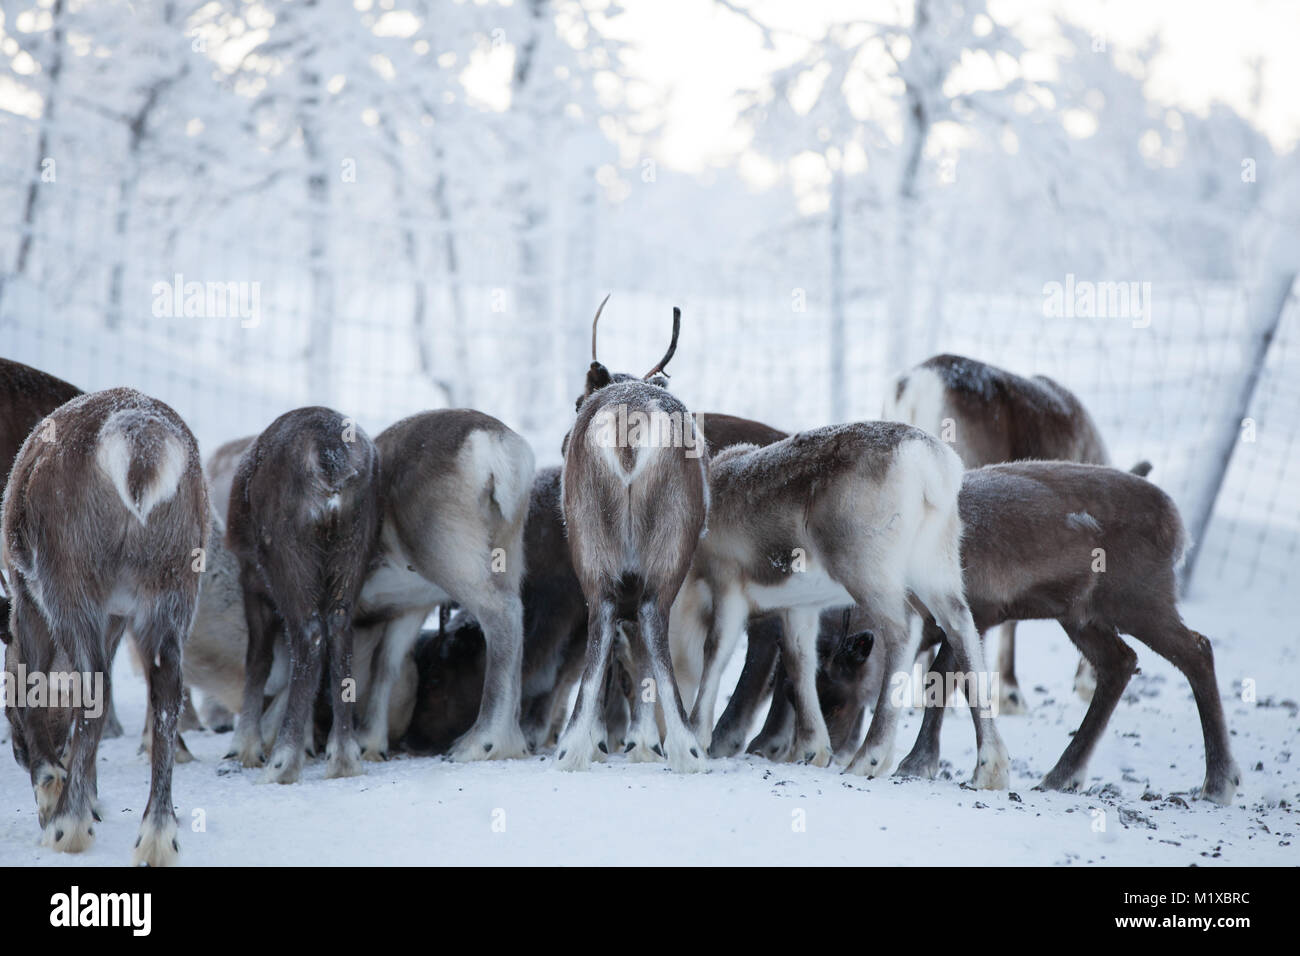 Feeding a reindeer flock during winter in Swedish Lapland - Stock Image